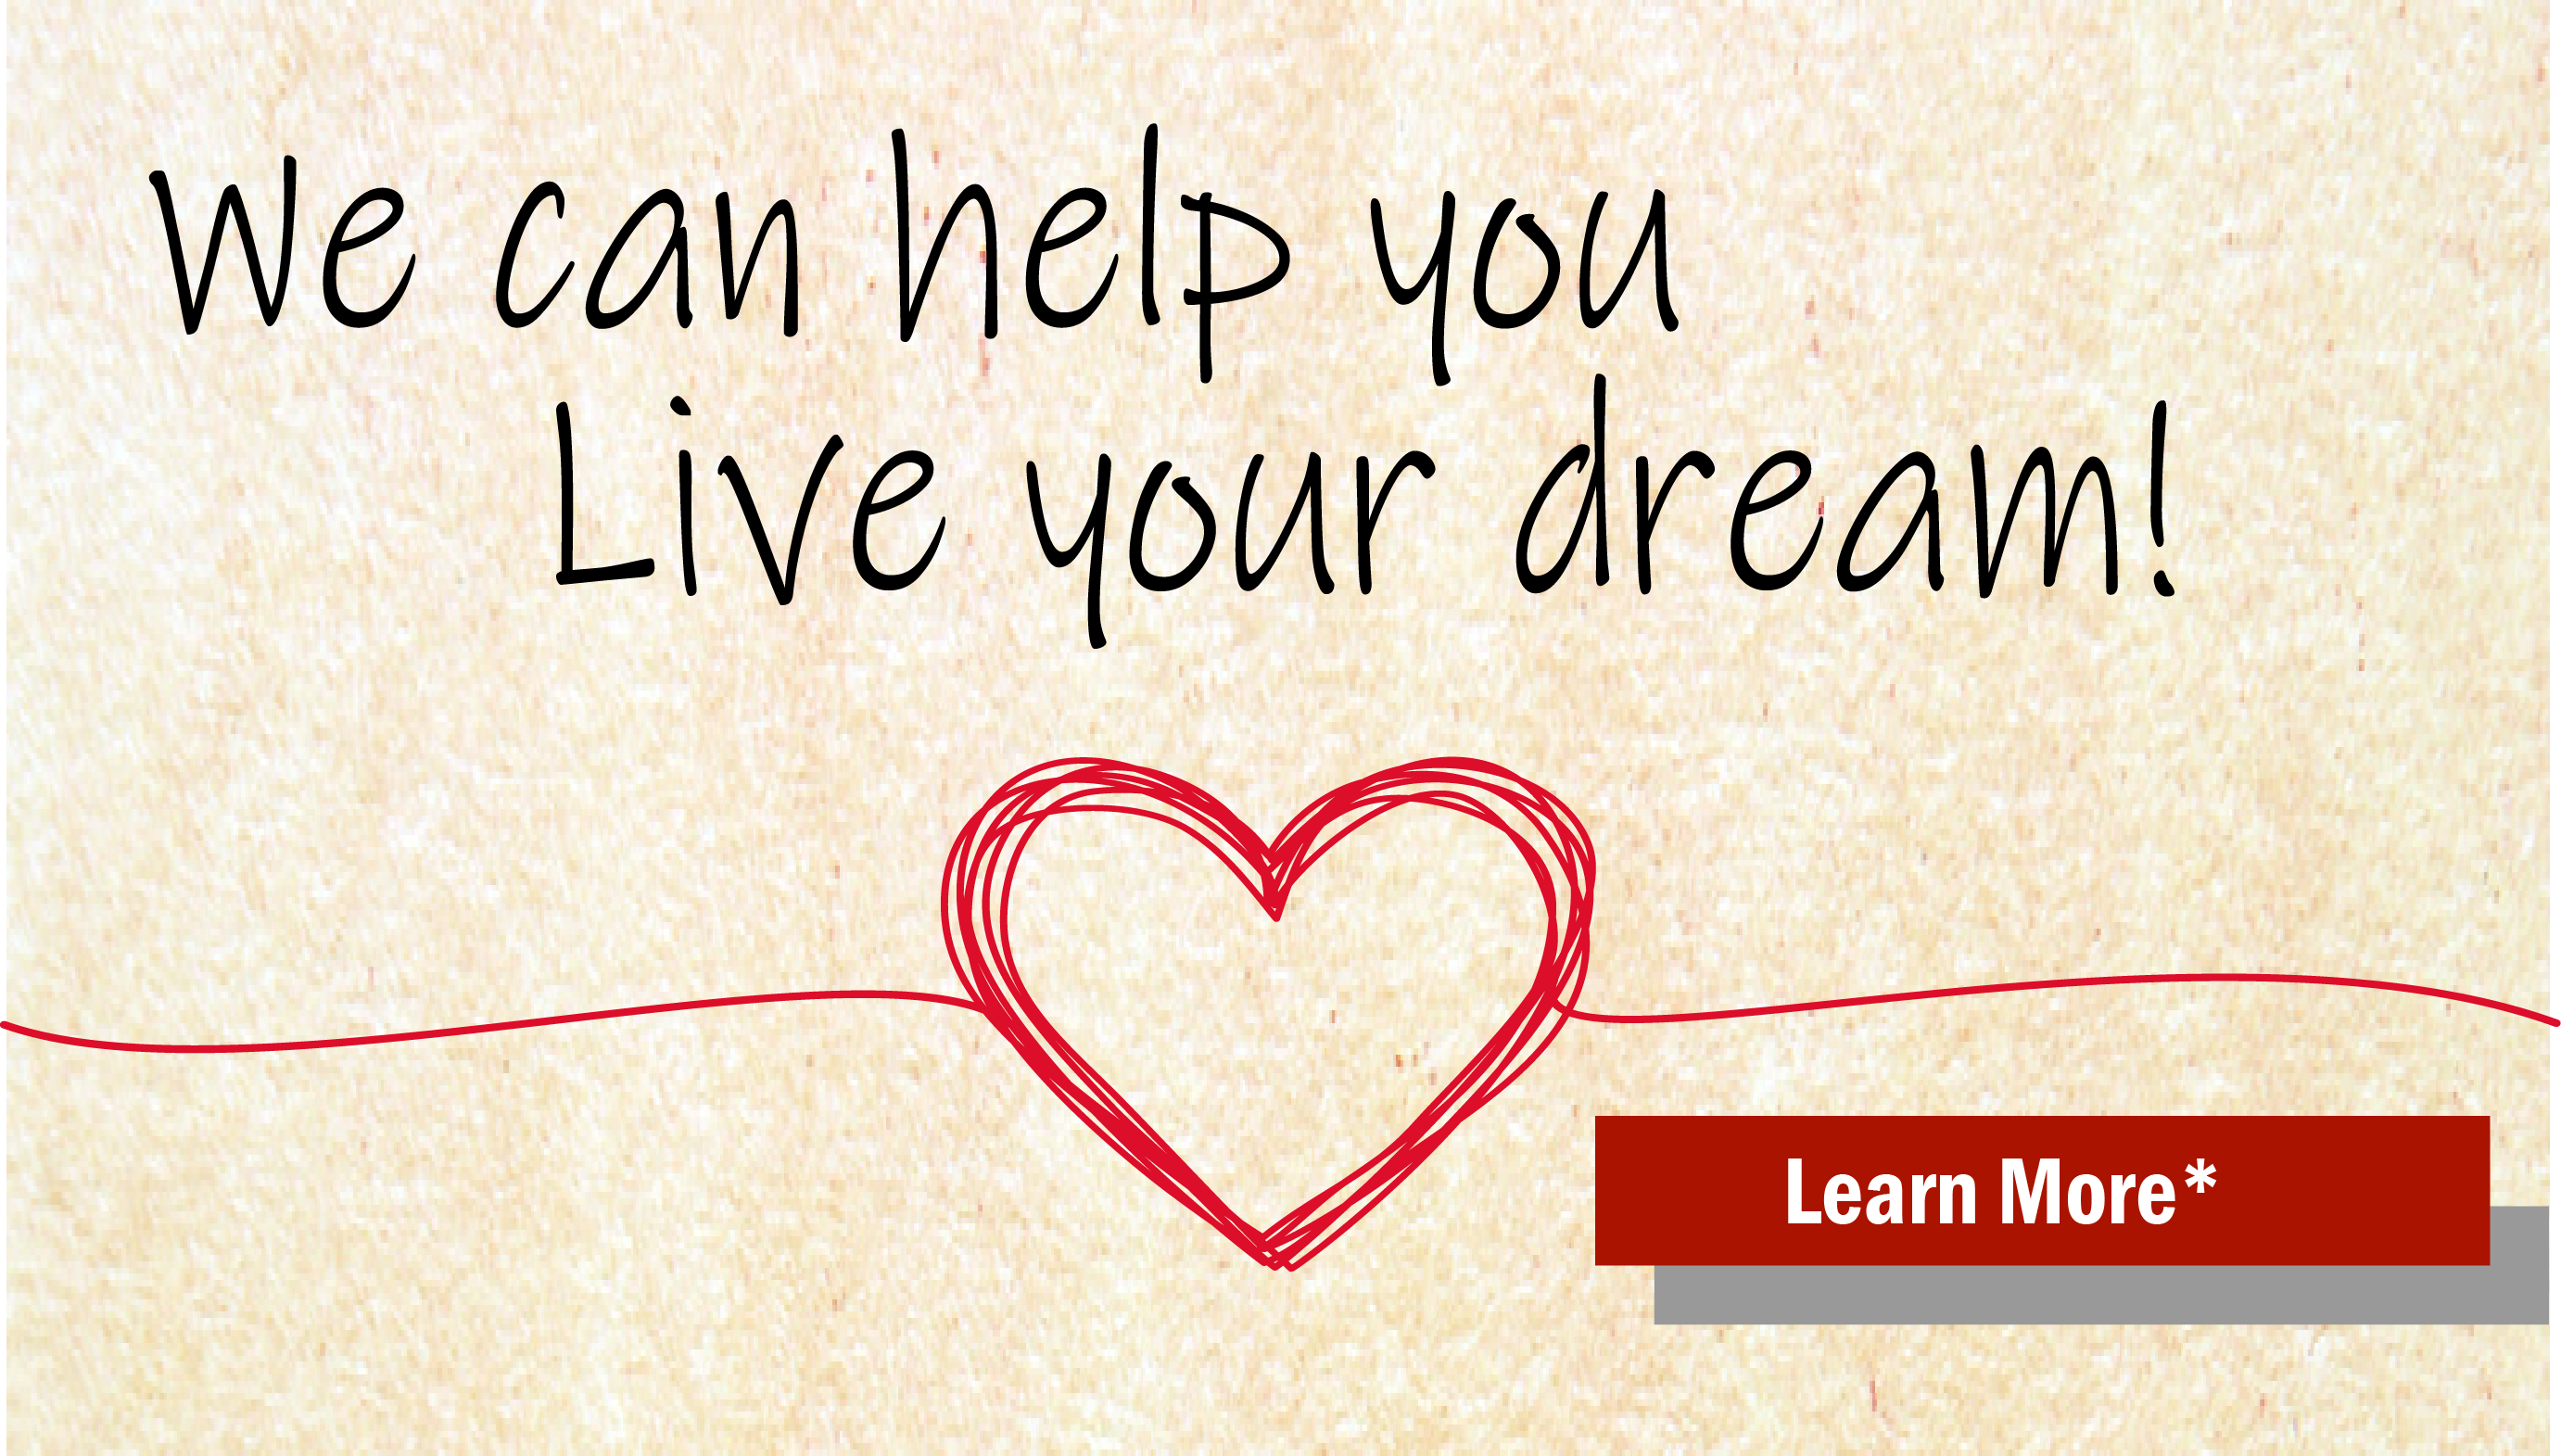 We can help you live your Dream with a Personal Loan!